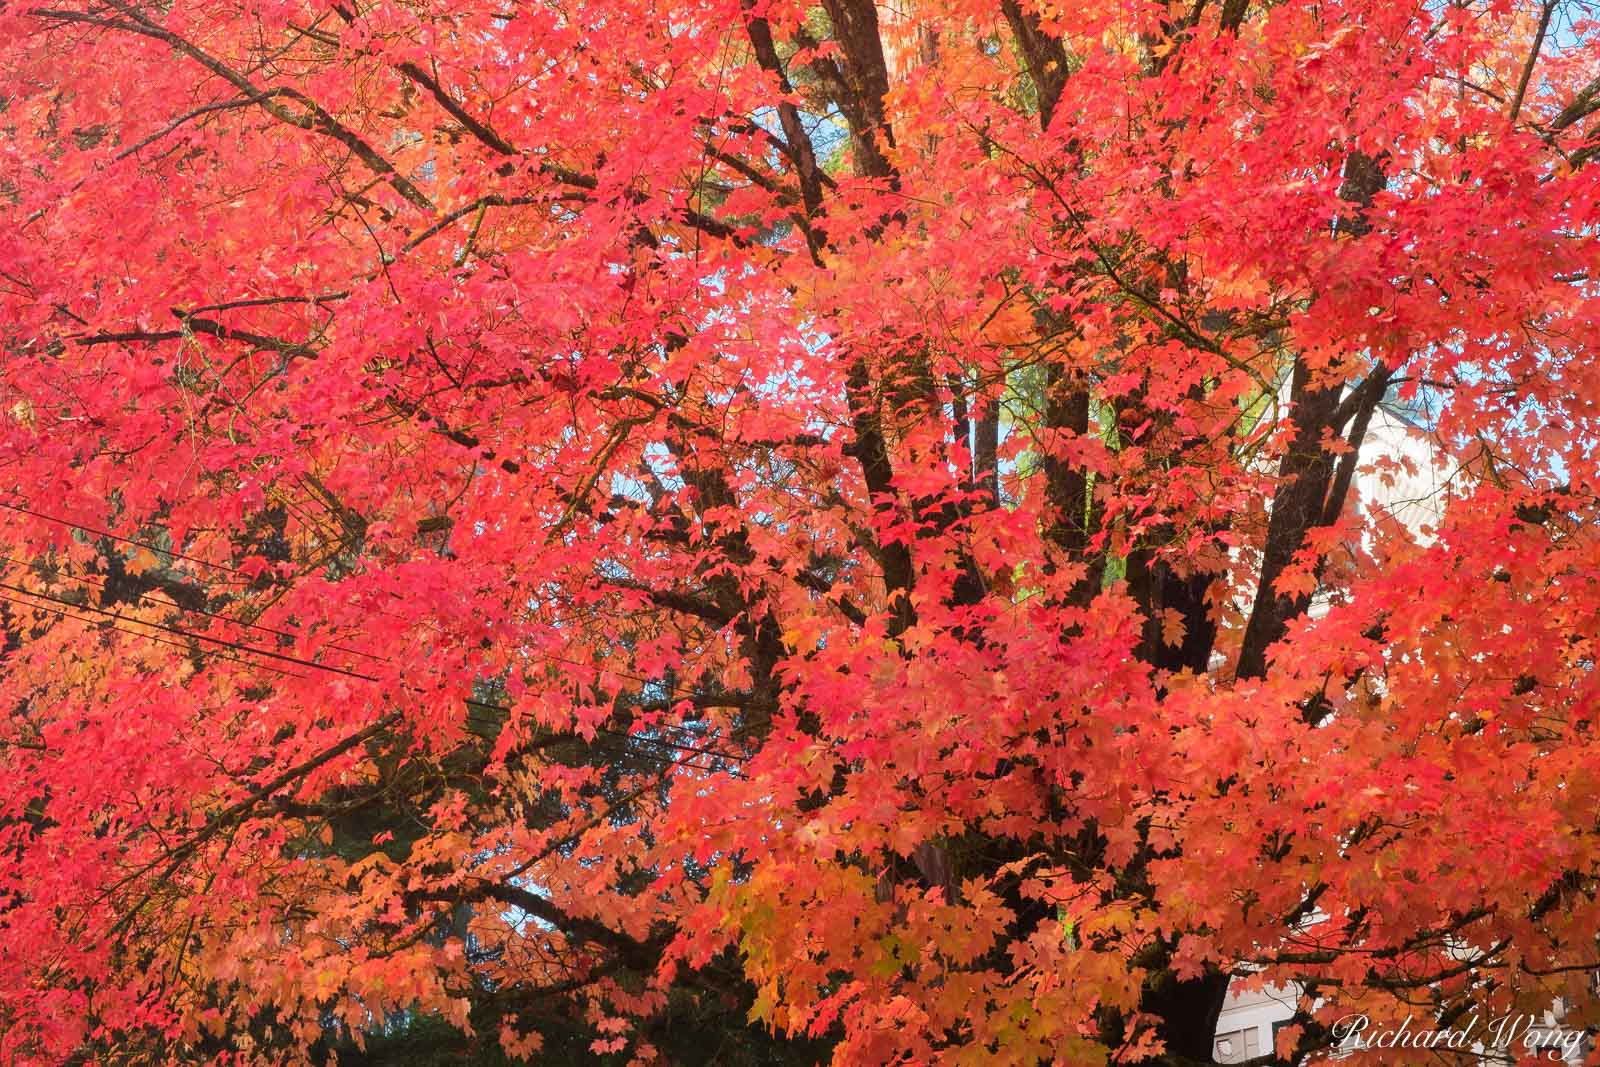 Red Fall Foliage, Nevada City, California One of my favorite California towns to visit during the fall season, Nevada City resembles...